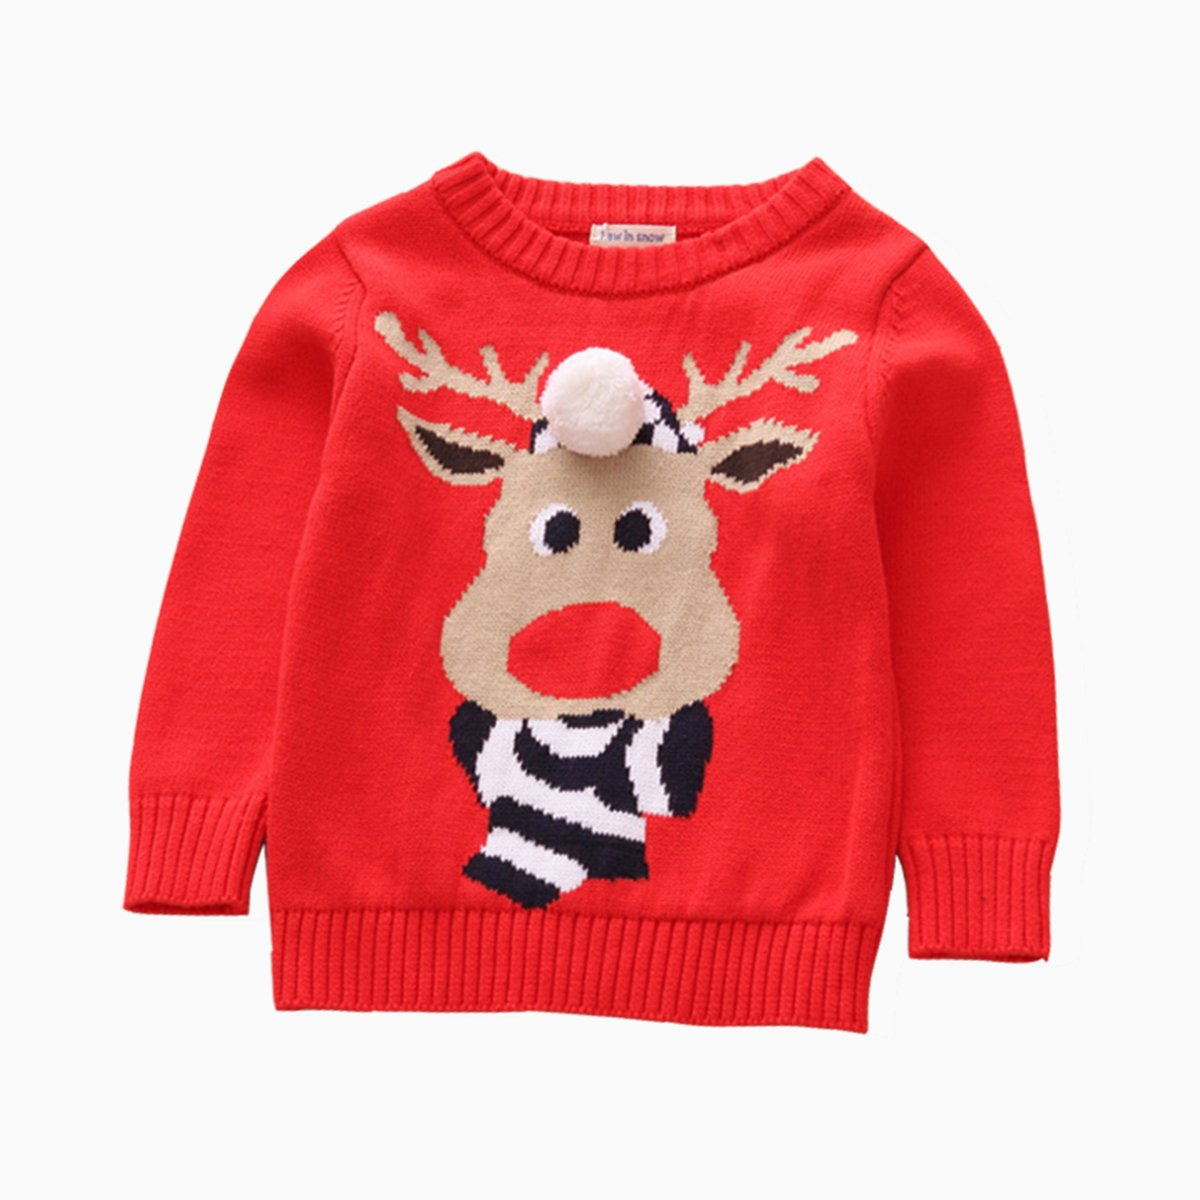 CHAIRAY Baby Girl Boy Elk Ugly Christmas Sweater Toddler Pullover Sweatshirt